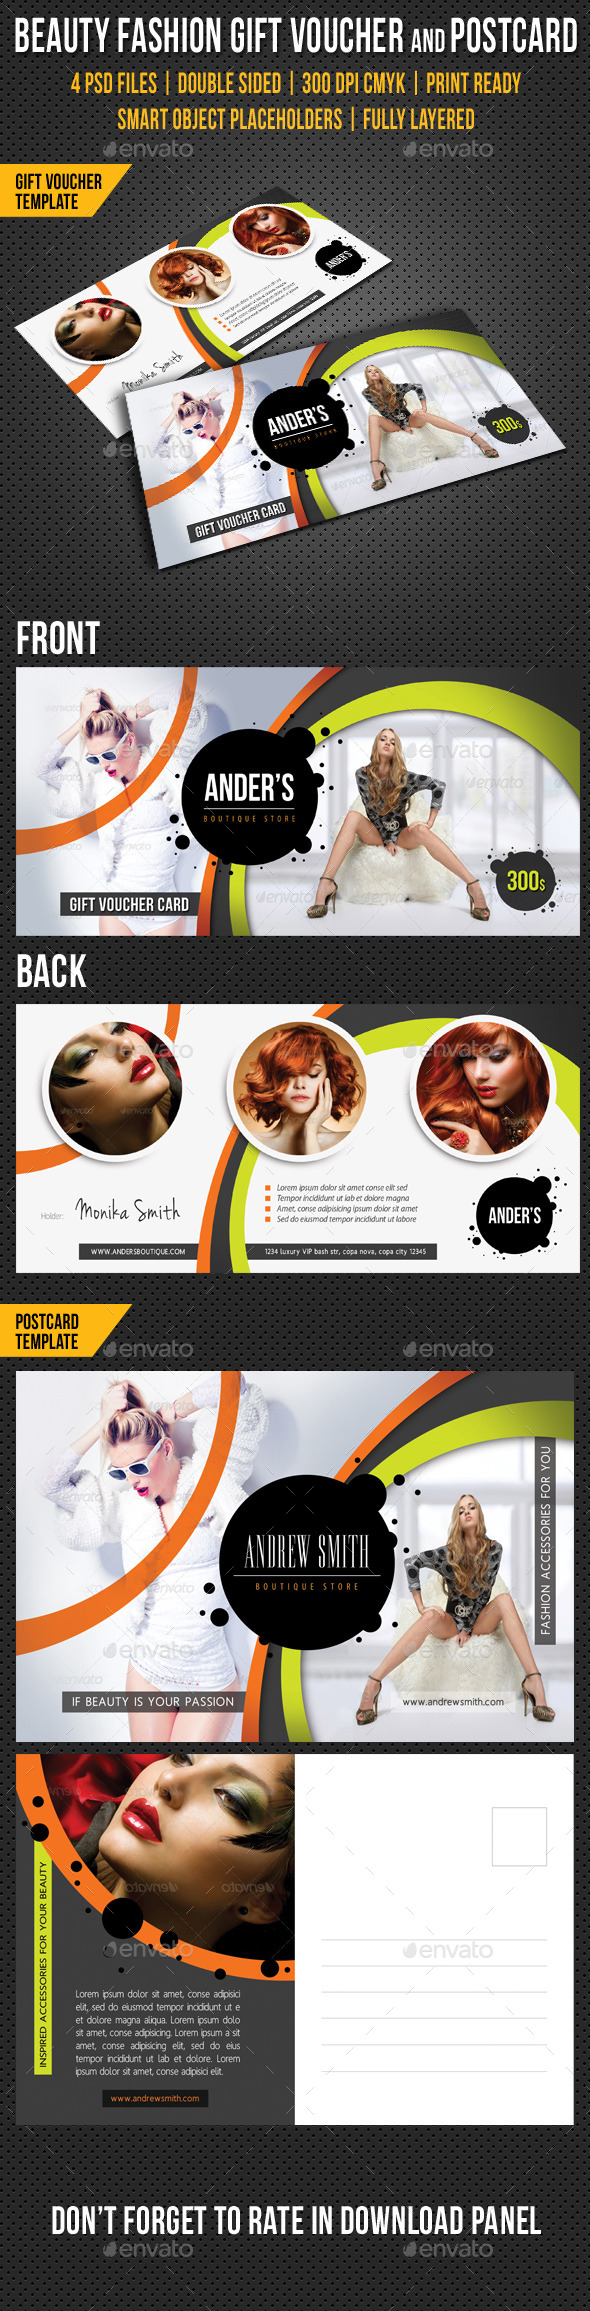 GraphicRiver Beauty Fashion Gift Voucher and Postcard Templates 10022084